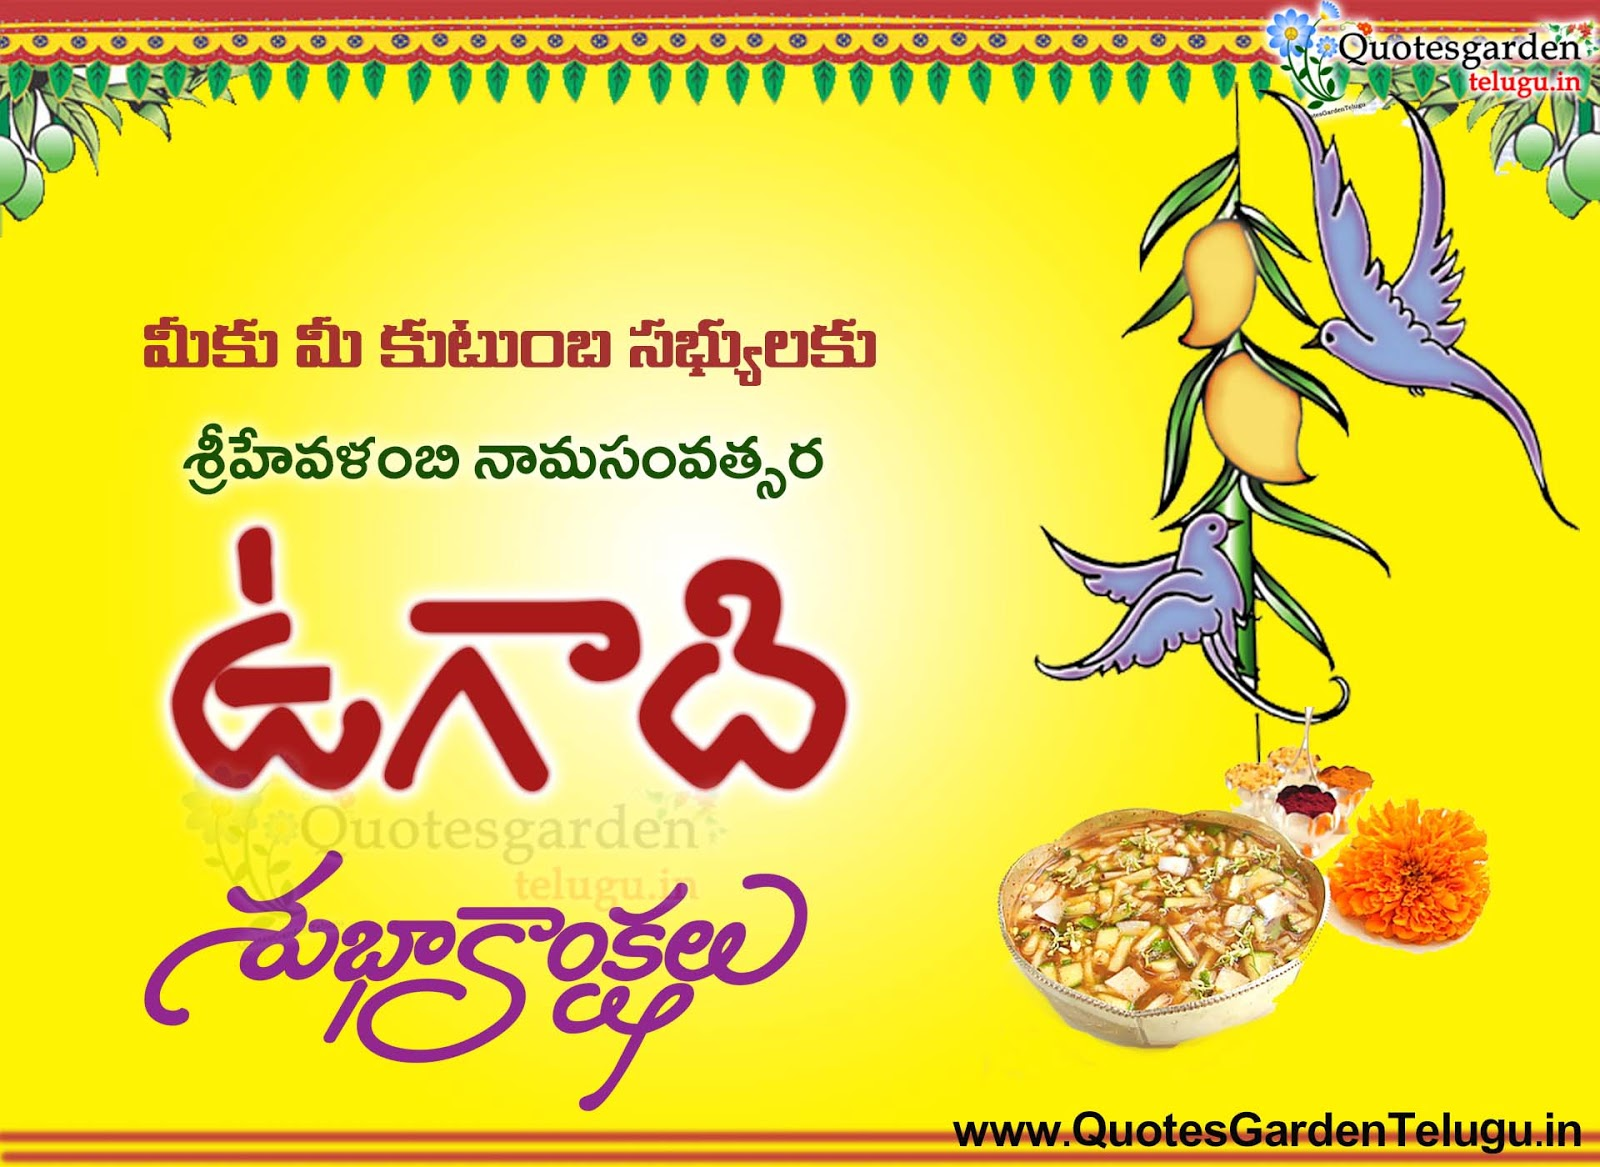 Telugu ugadi 2017 greetings wishes sri hevalambi nama samvatsara best telugu 2017 happy ugadi wishes quotes m4hsunfo